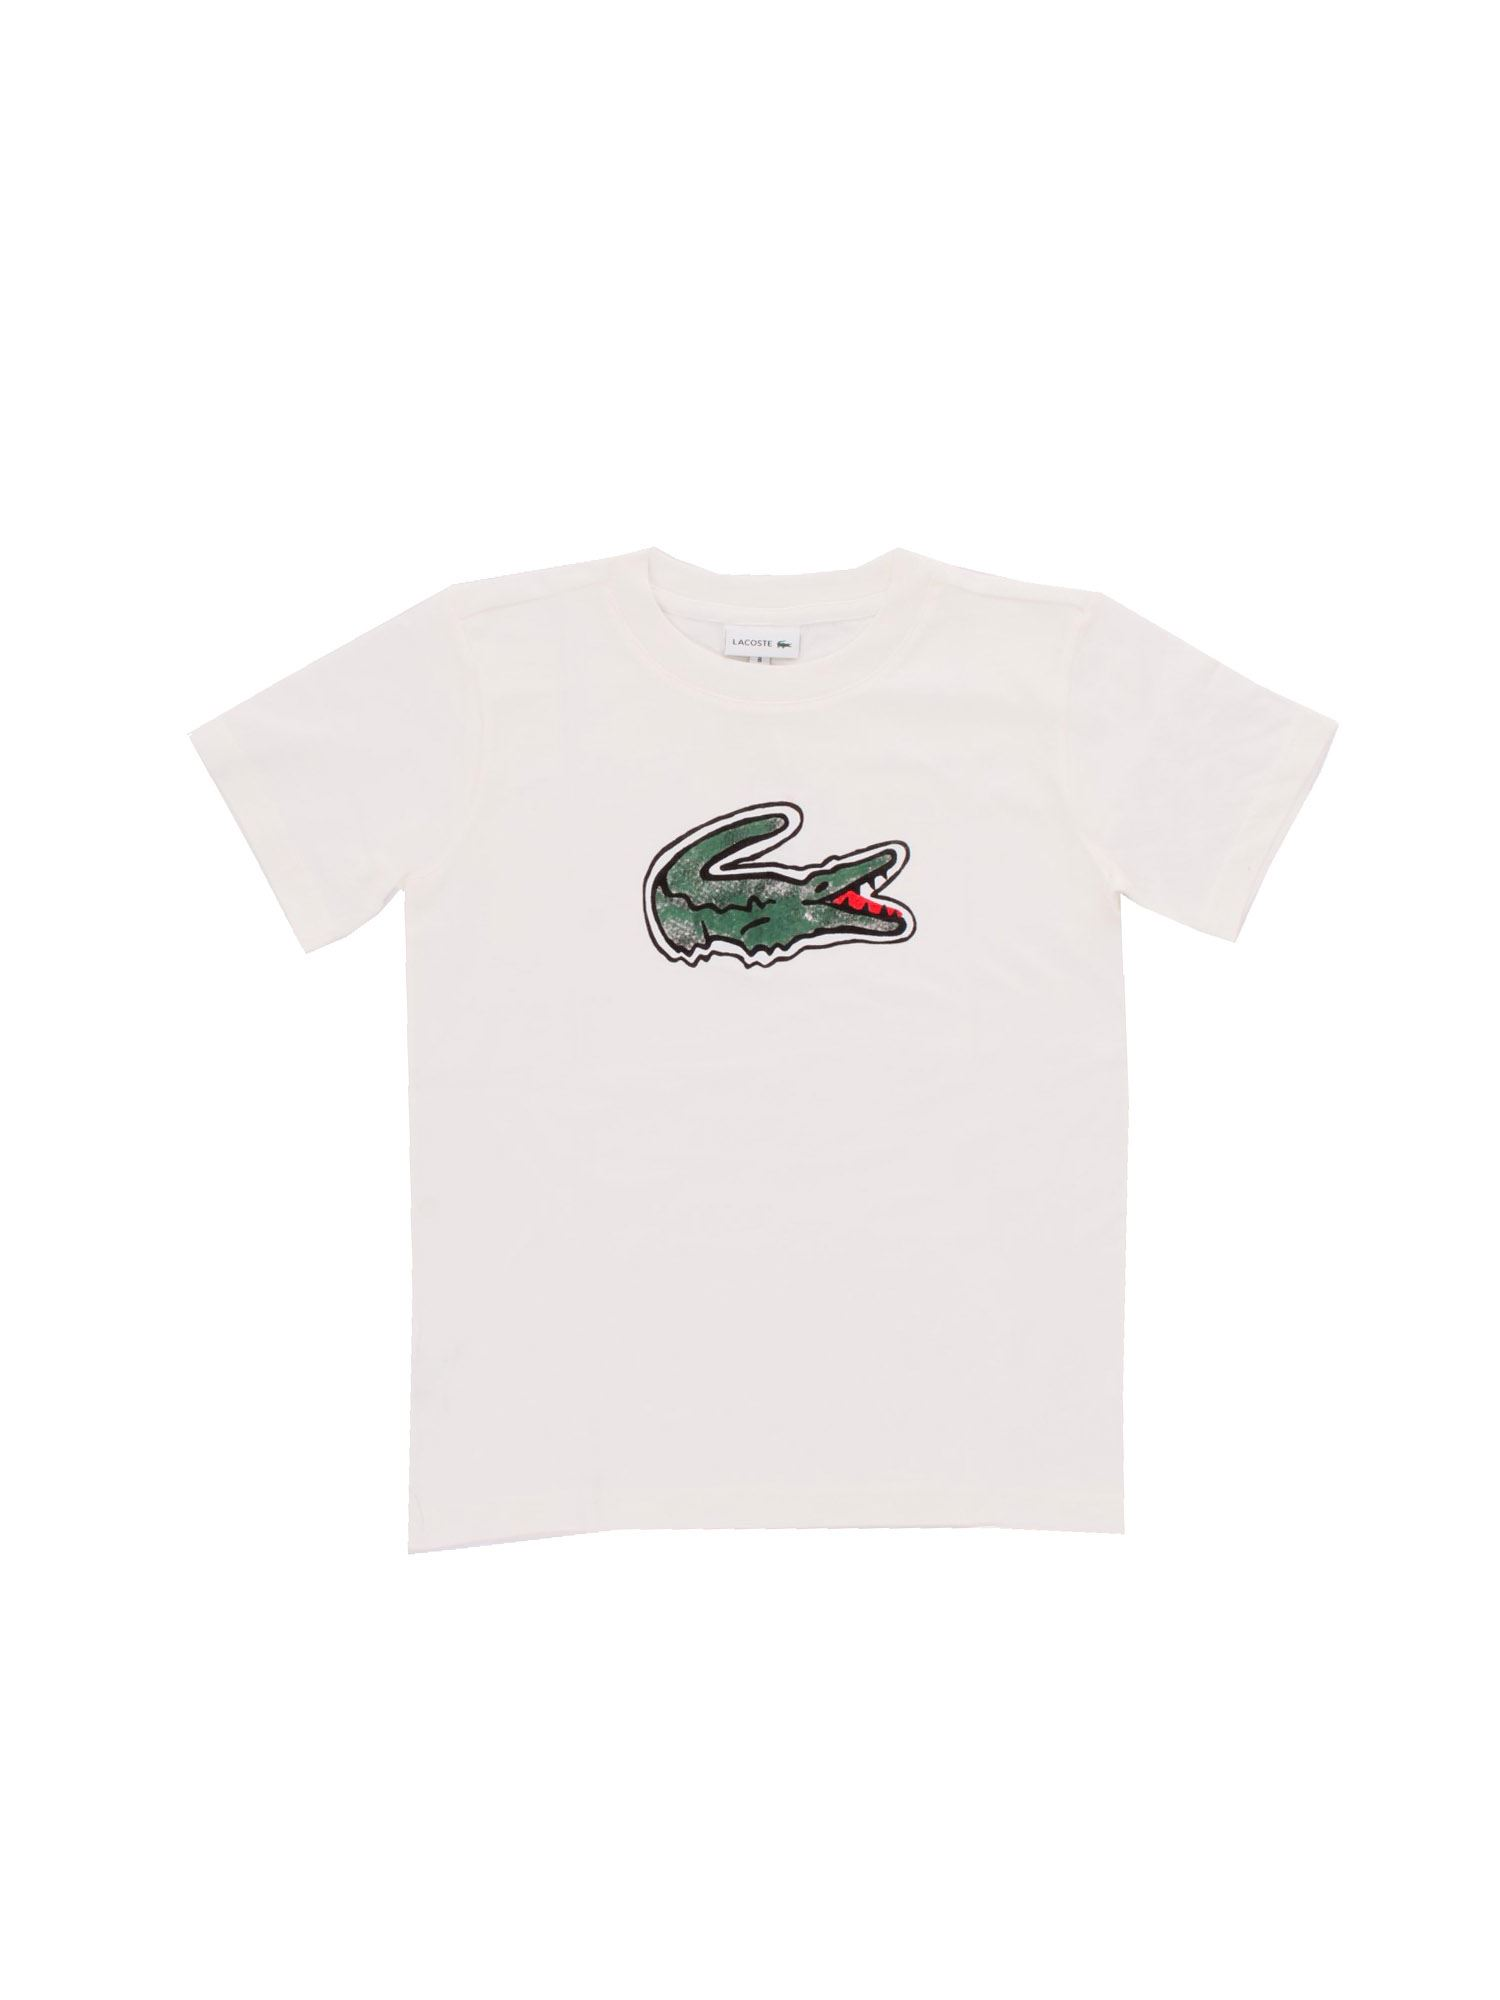 Lacoste MAXI LOGO T-SHIRT IN WHITE